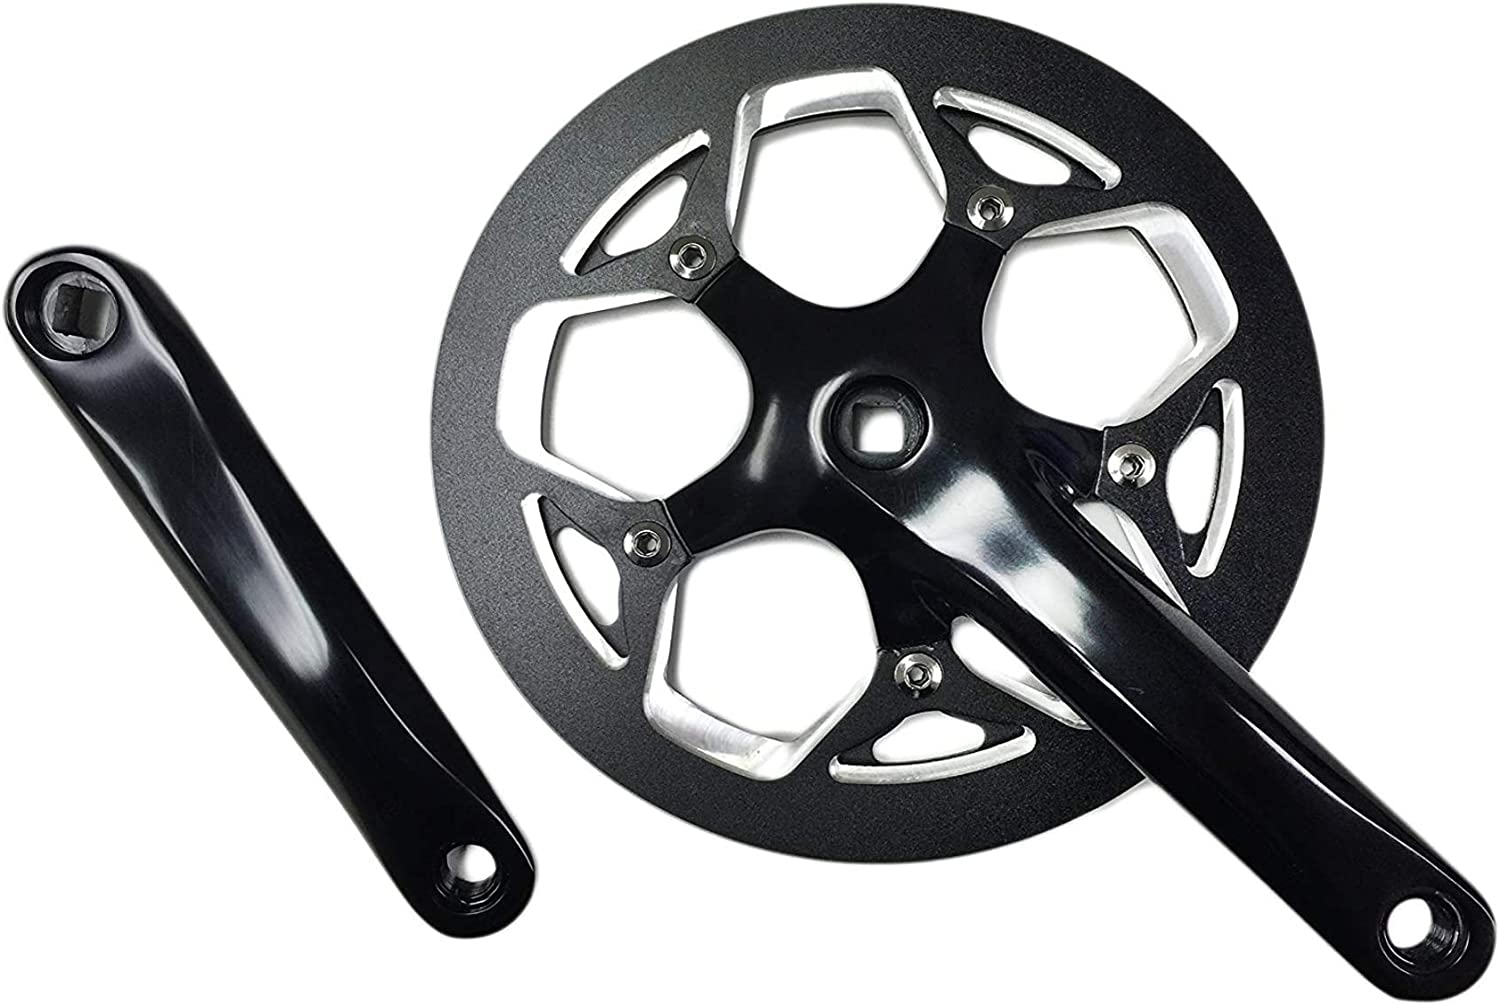 MOBIC Lasco 53T Forged Crankset 170mm Forged Arms CNC Aluminum Chain Guard Ebikes Bike